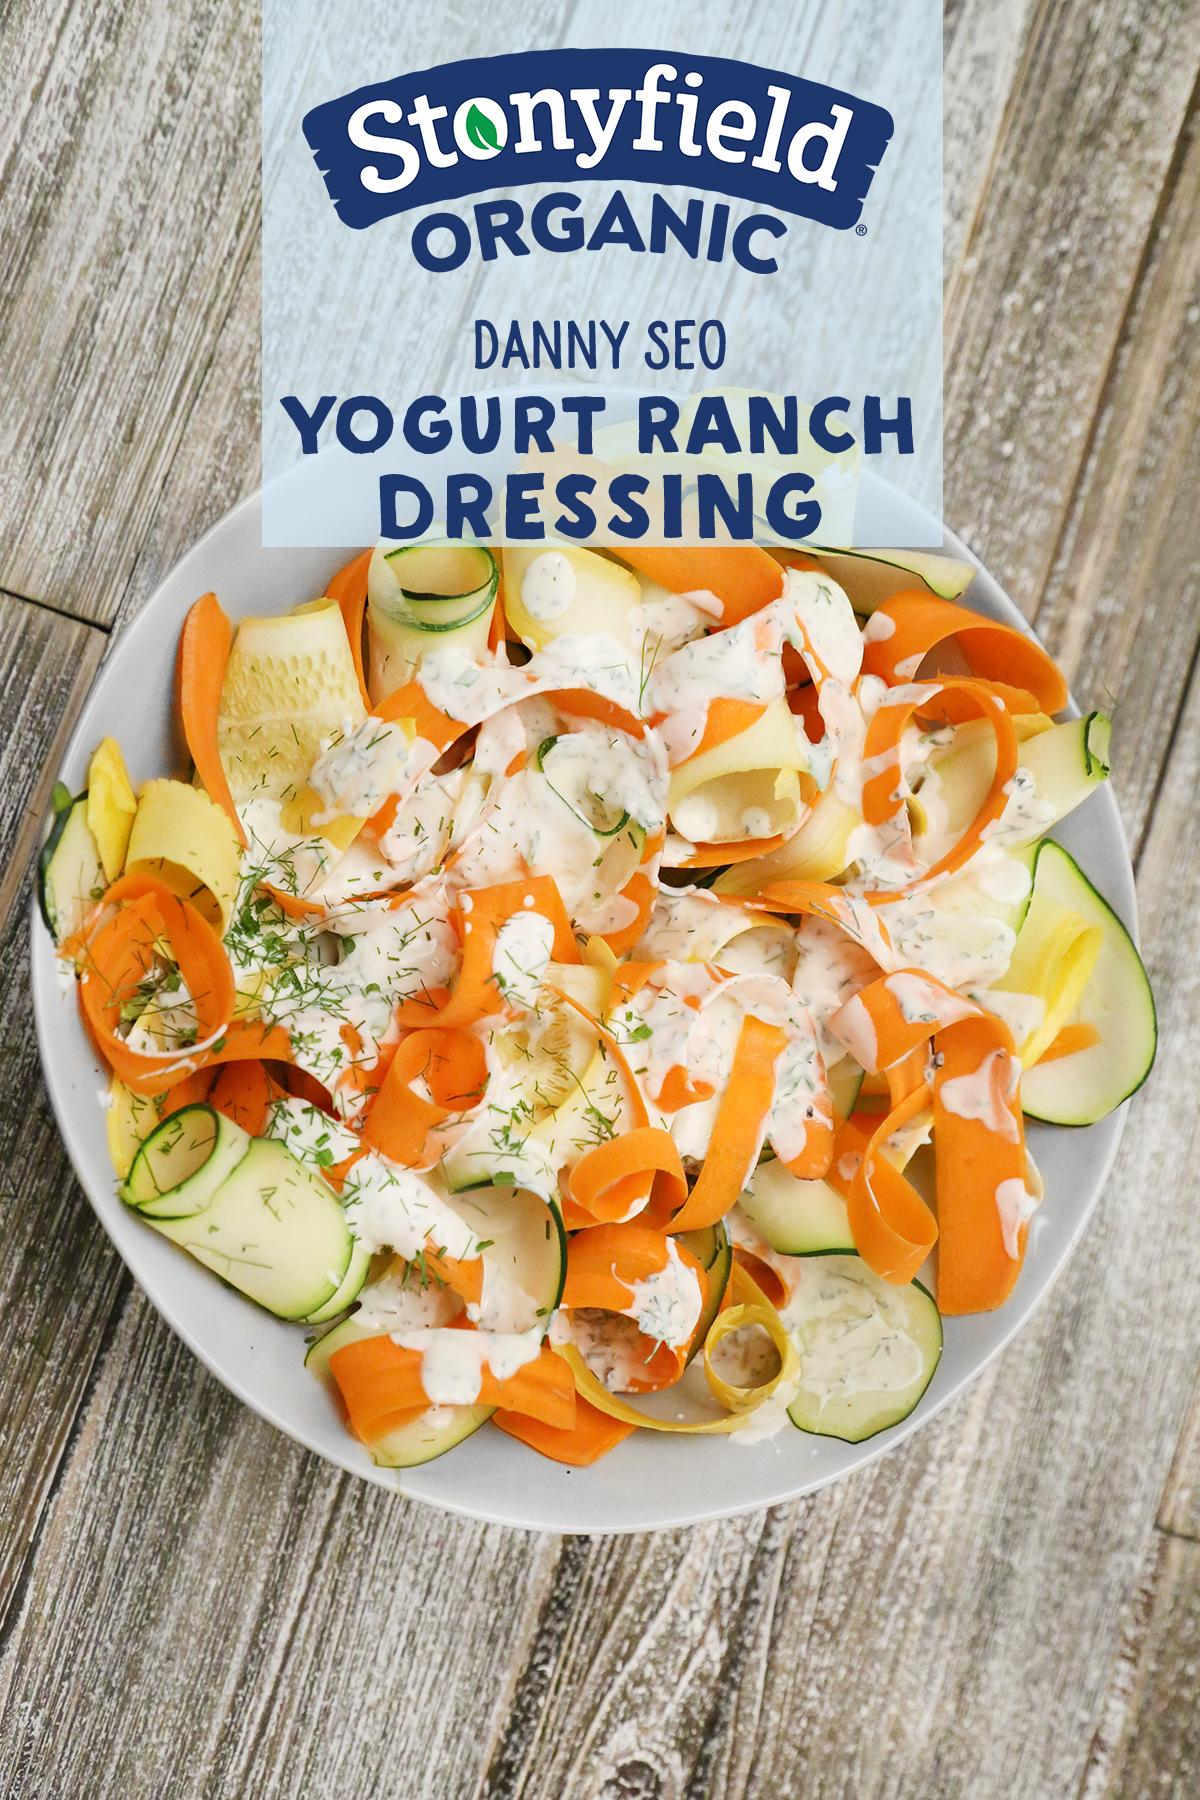 Yogurt Ranch Dressing Recipe Stonyfield